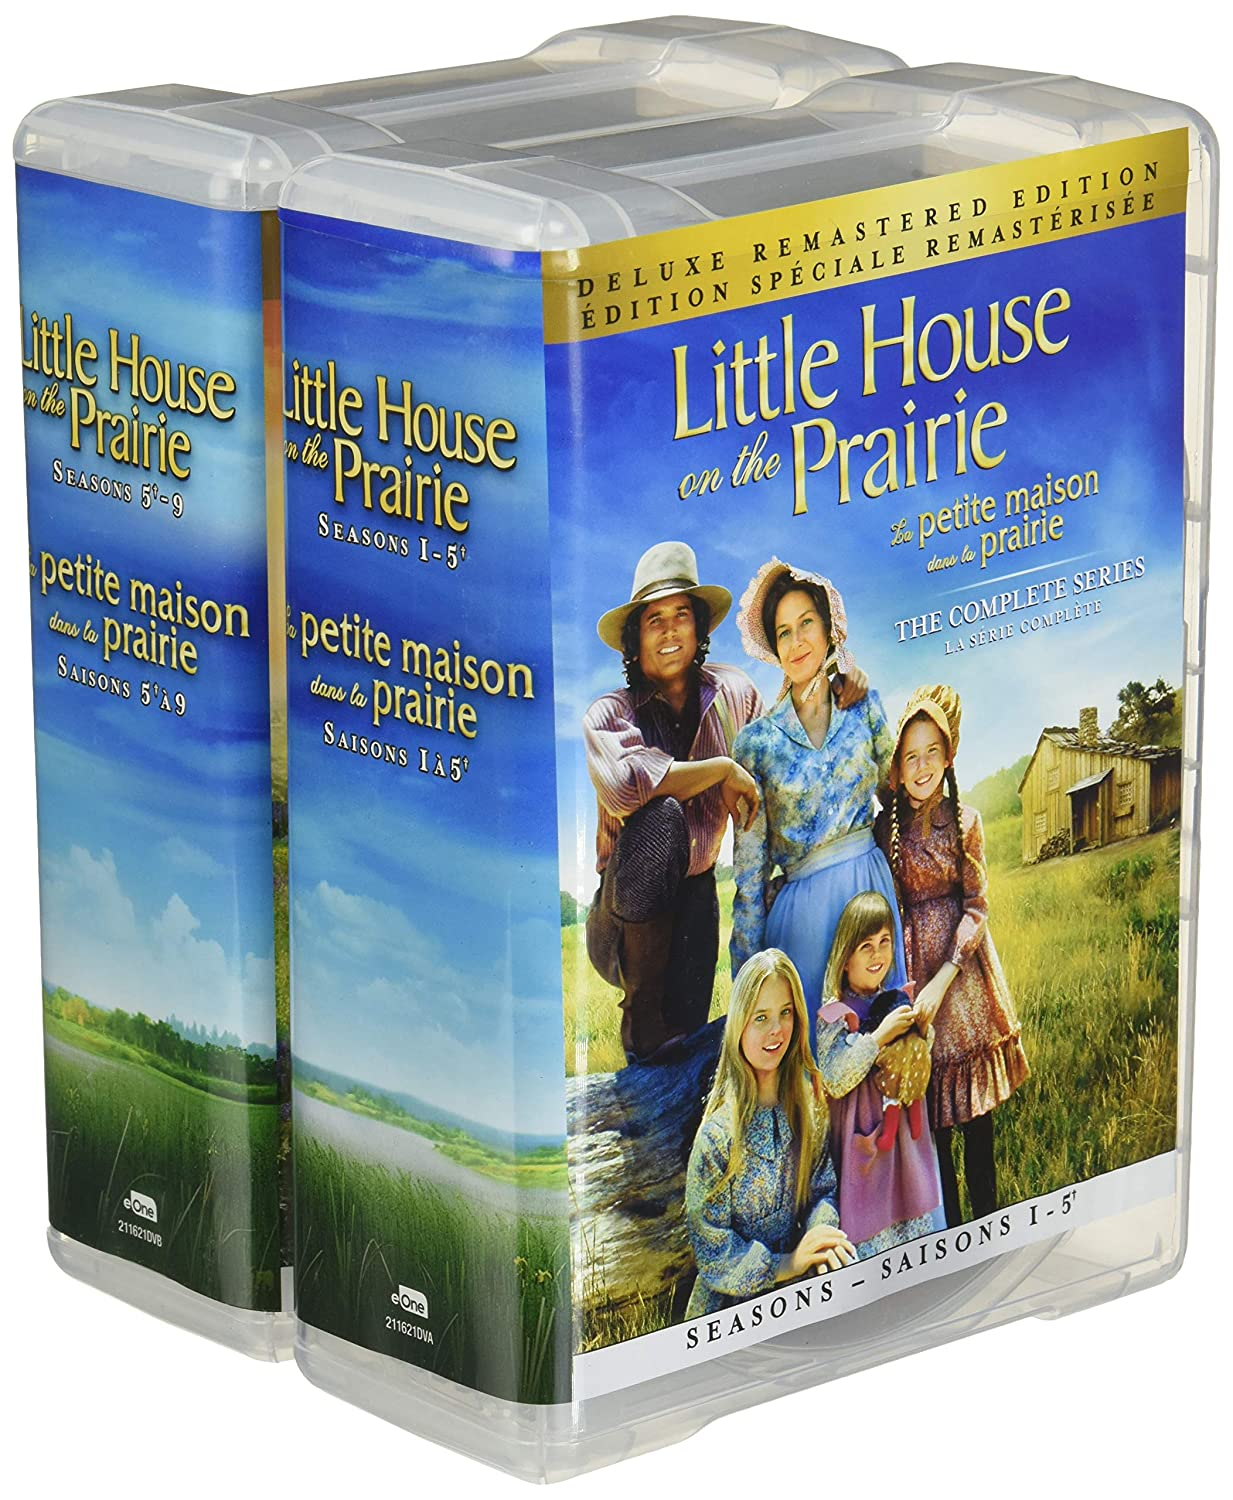 Amazon Com Little House On The Prairie The Complete Series Deluxe Remastered Edition Movies Tv